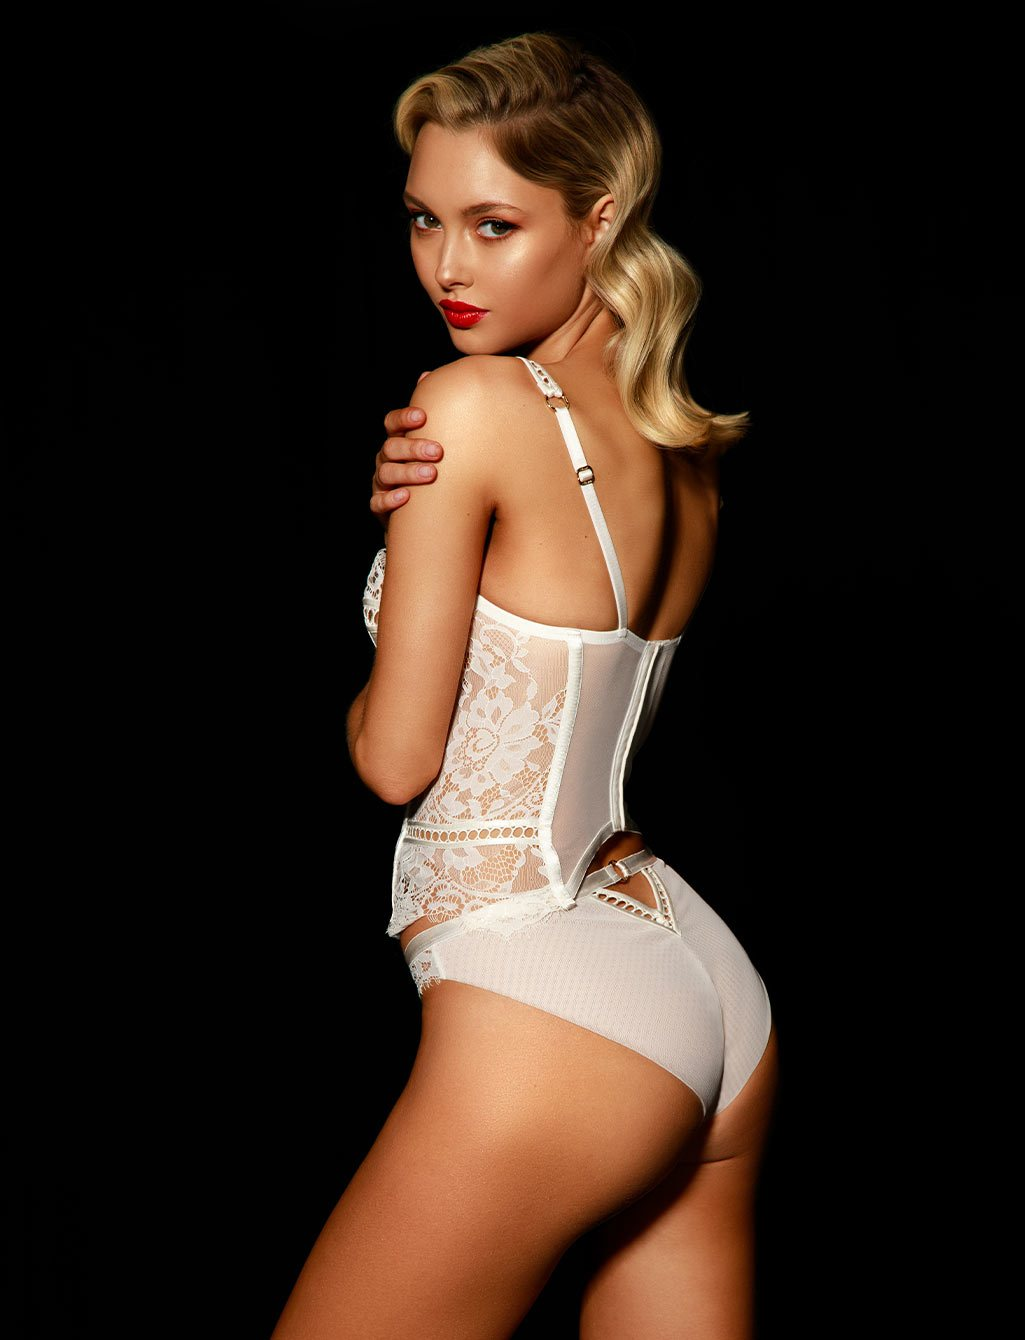 Molly Lace White Ivory Bridal Underwire Bustier | Shop  Lingerie Honey Birdette